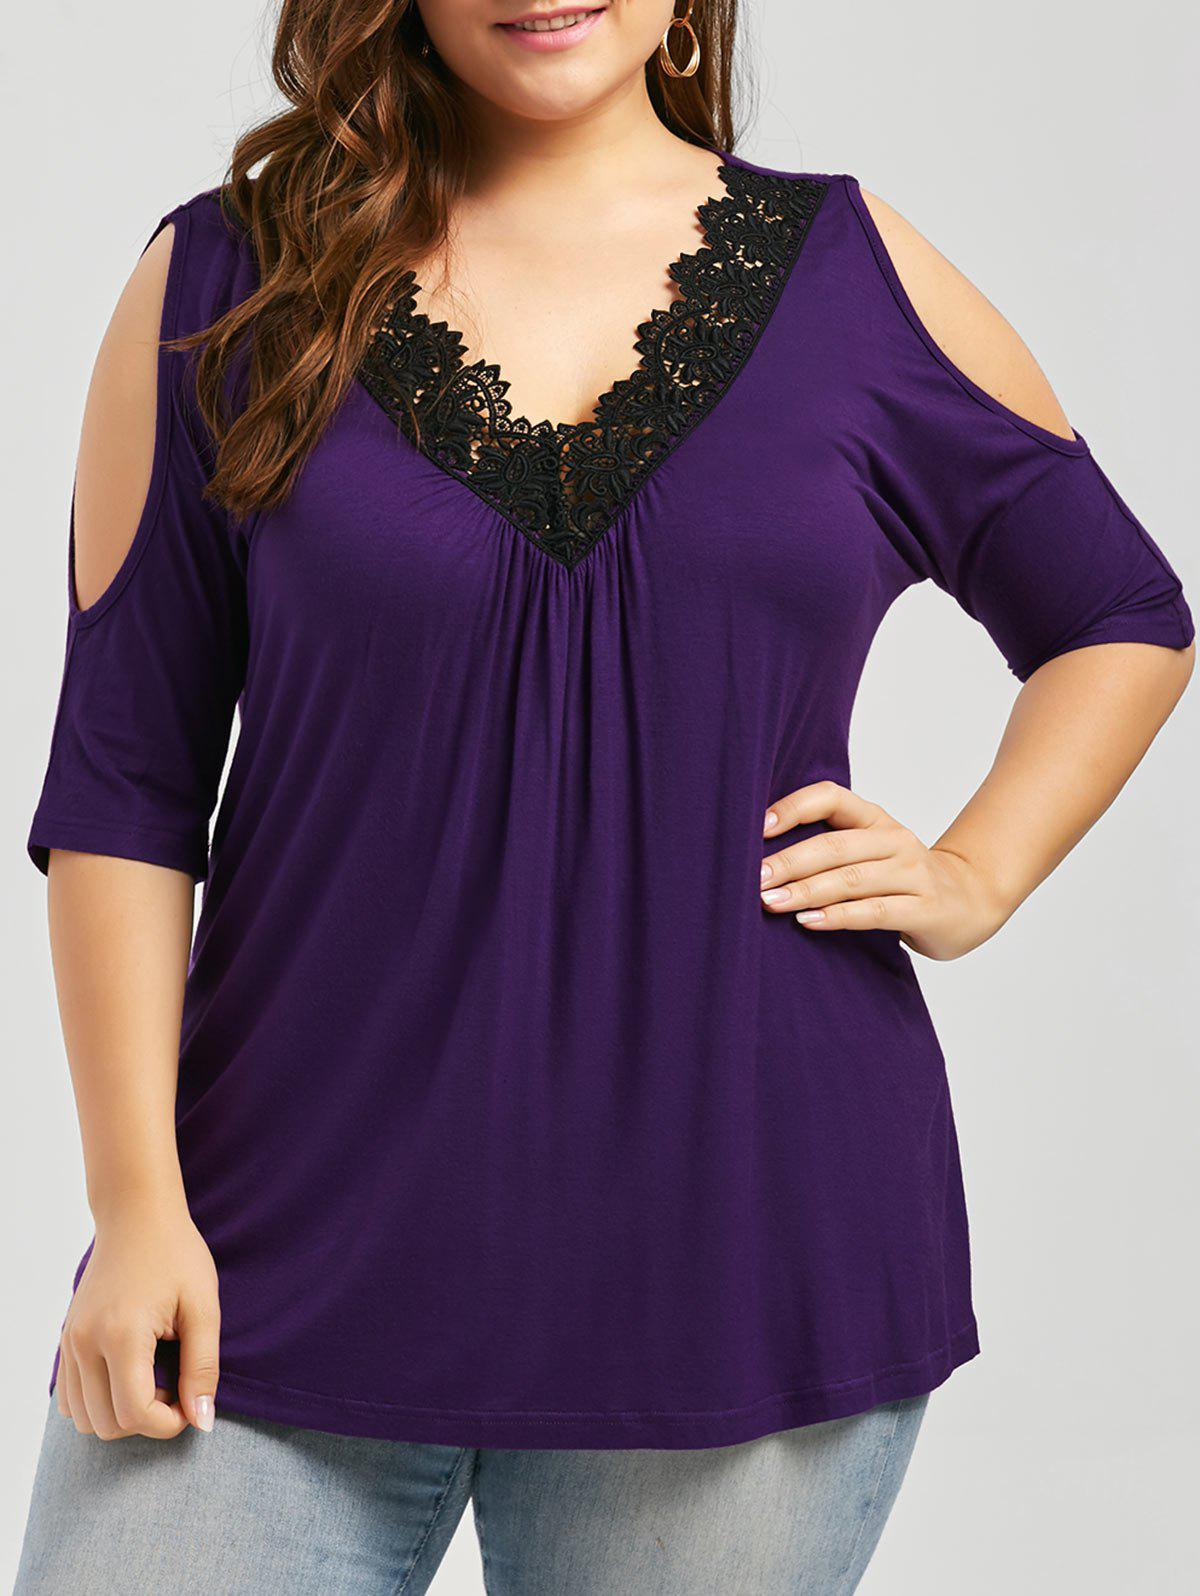 Plus Size Lace Trim Cold Shoulder V Neck Flowy TopWOMEN<br><br>Size: XL; Color: PURPLE; Material: Cotton,Cotton Blends,Polyester; Shirt Length: Regular; Sleeve Length: Short; Collar: V-Neck; Style: Fashion; Season: Spring,Summer; Embellishment: Hollow Out; Pattern Type: Solid; Weight: 0.3400kg; Package Contents: 1 x Top;